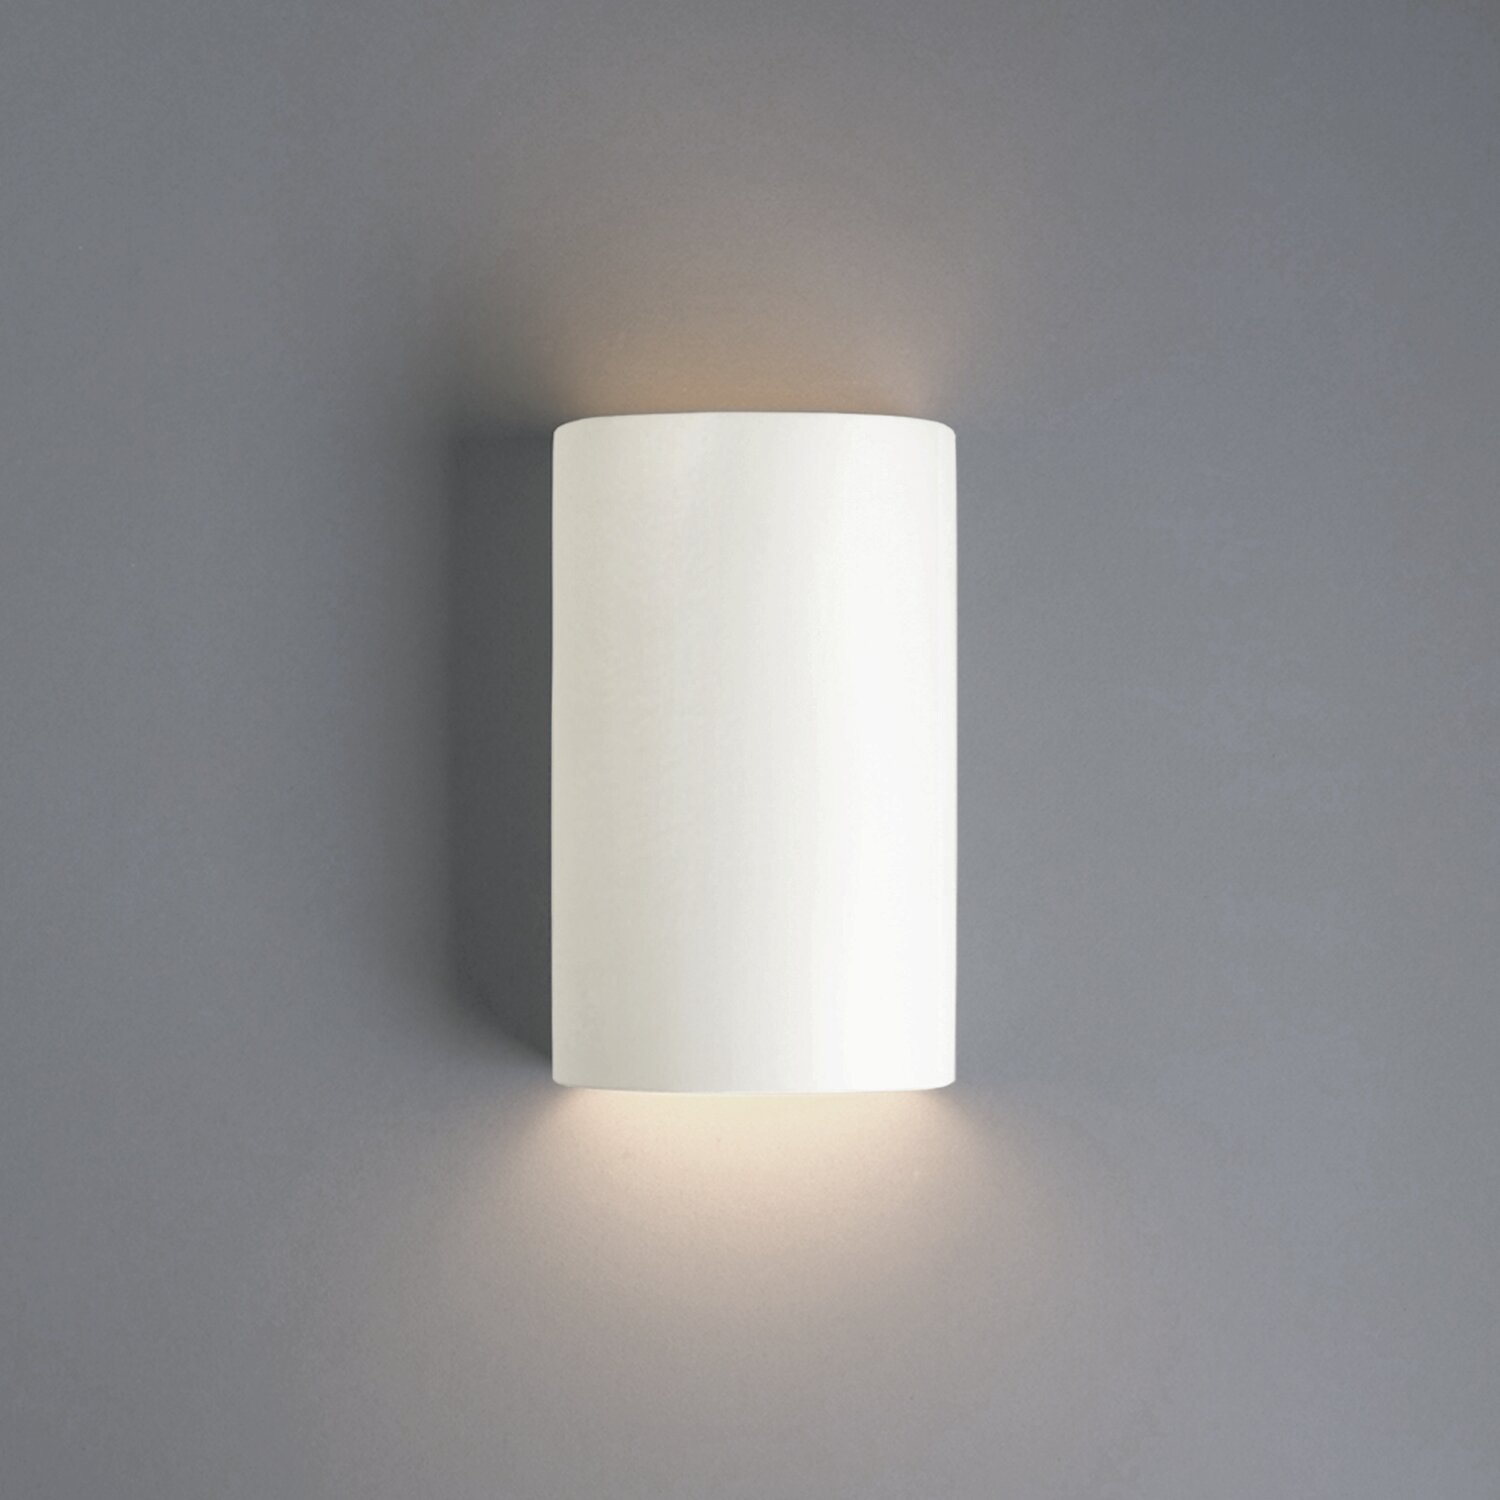 Scanlan 1 Light Wall Sconce